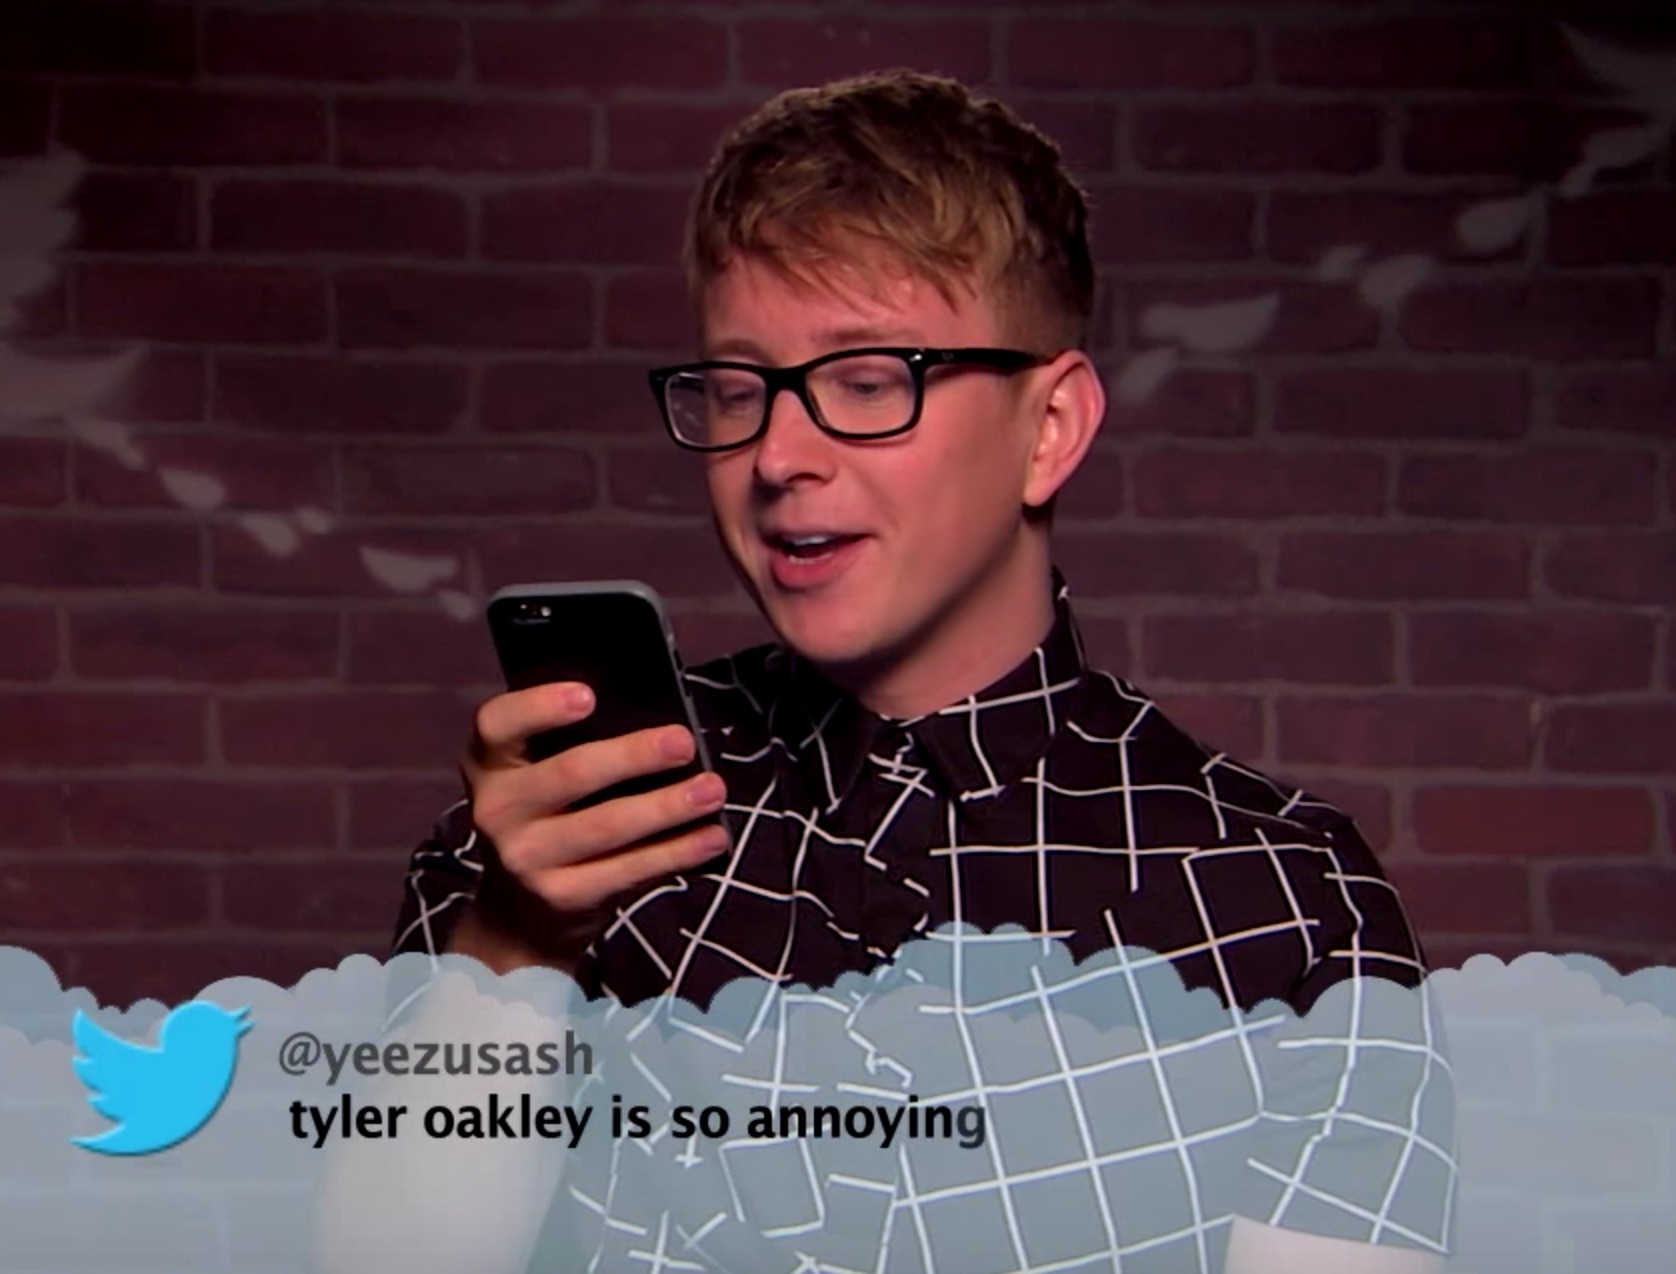 youtubers mean tweets